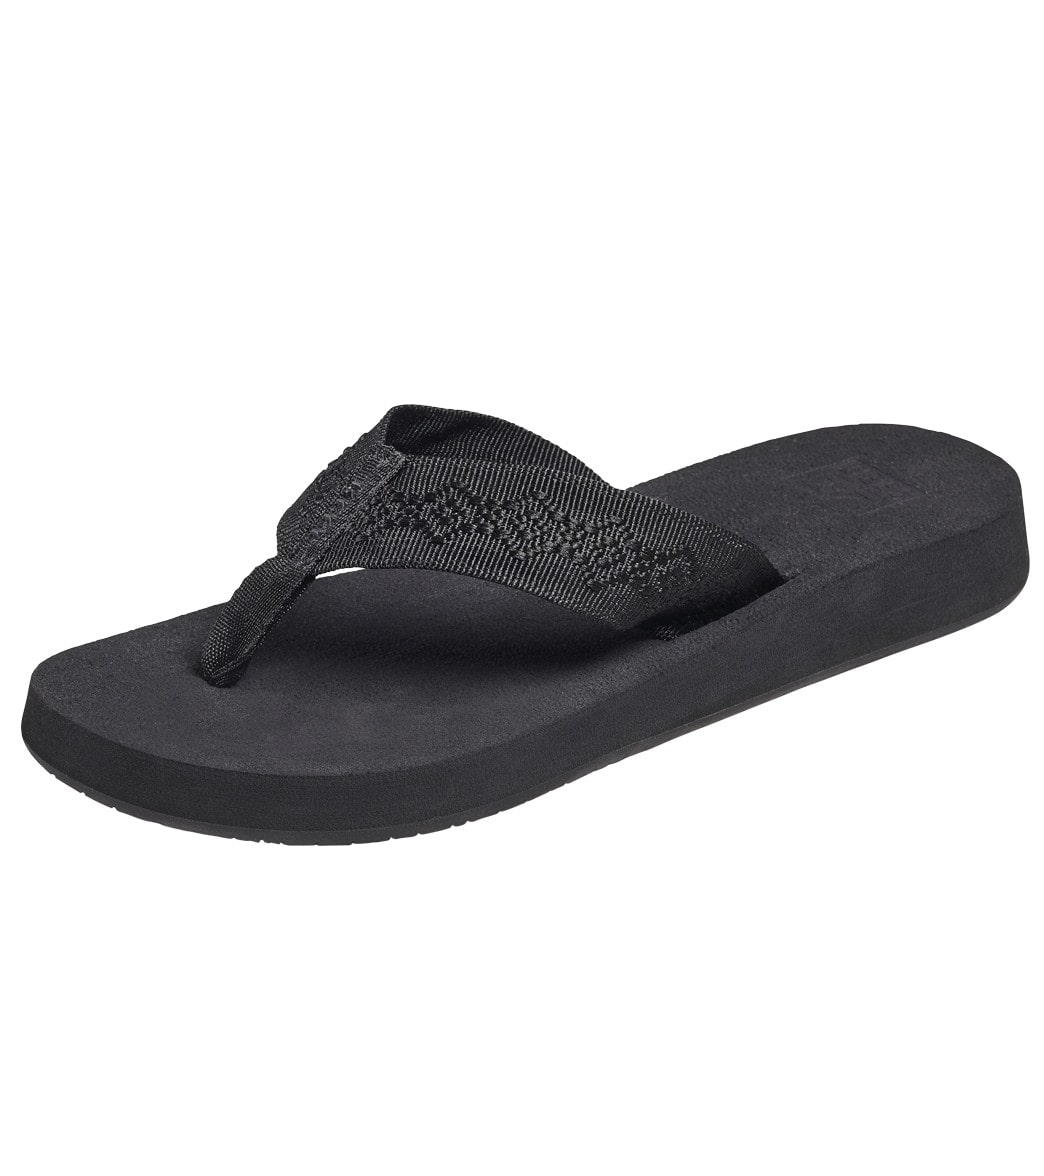 a15df6e16 Reef Women s Sandy Flip Flop at SwimOutlet.com